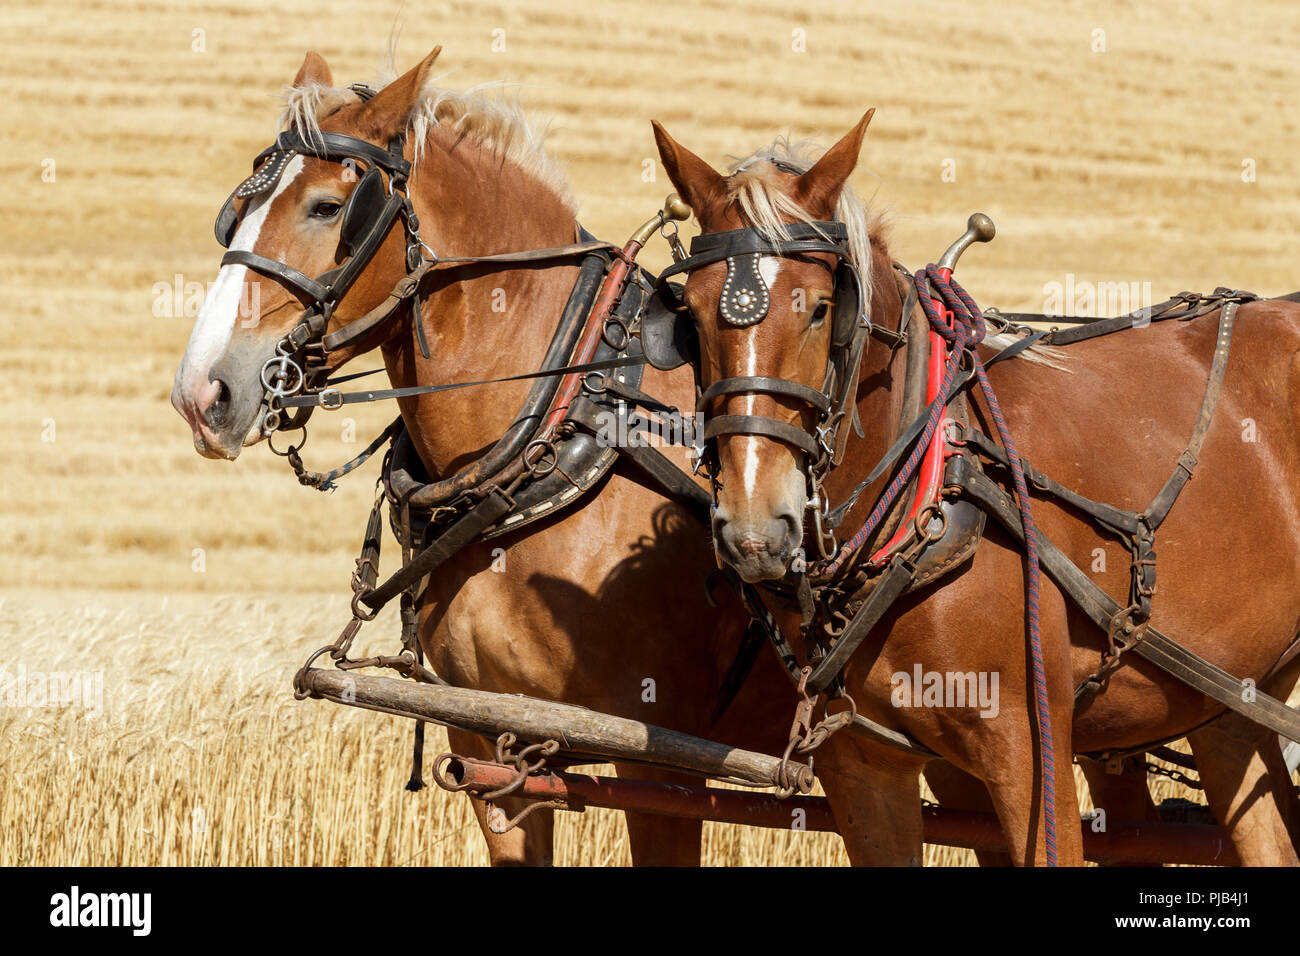 Two draft horses harnessed up and hitched to the wagon at the Colfax threshing bee in Colfax, Washington. - Stock Image